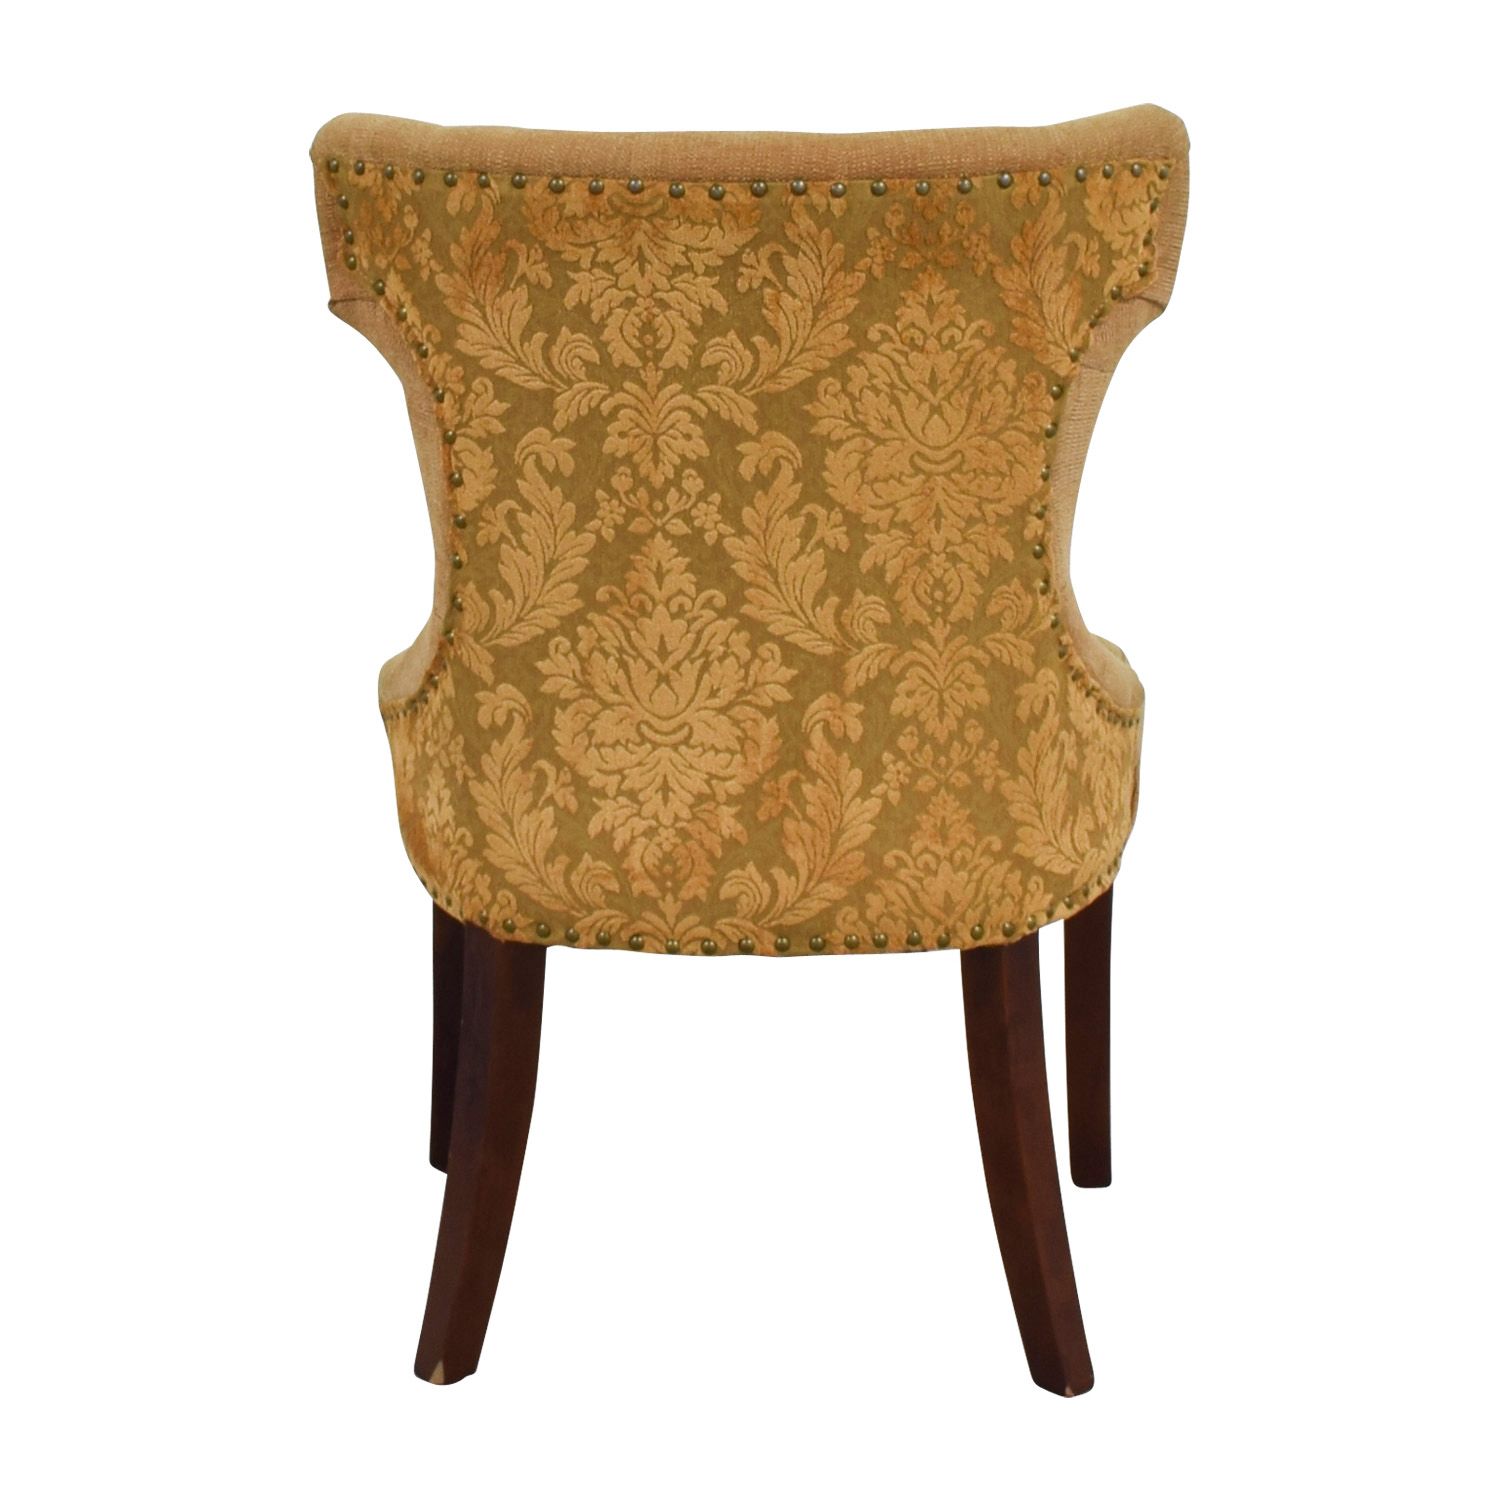 pier 1 accent chairs king kong massage chair 58 off custom beige upholstered semi round buy